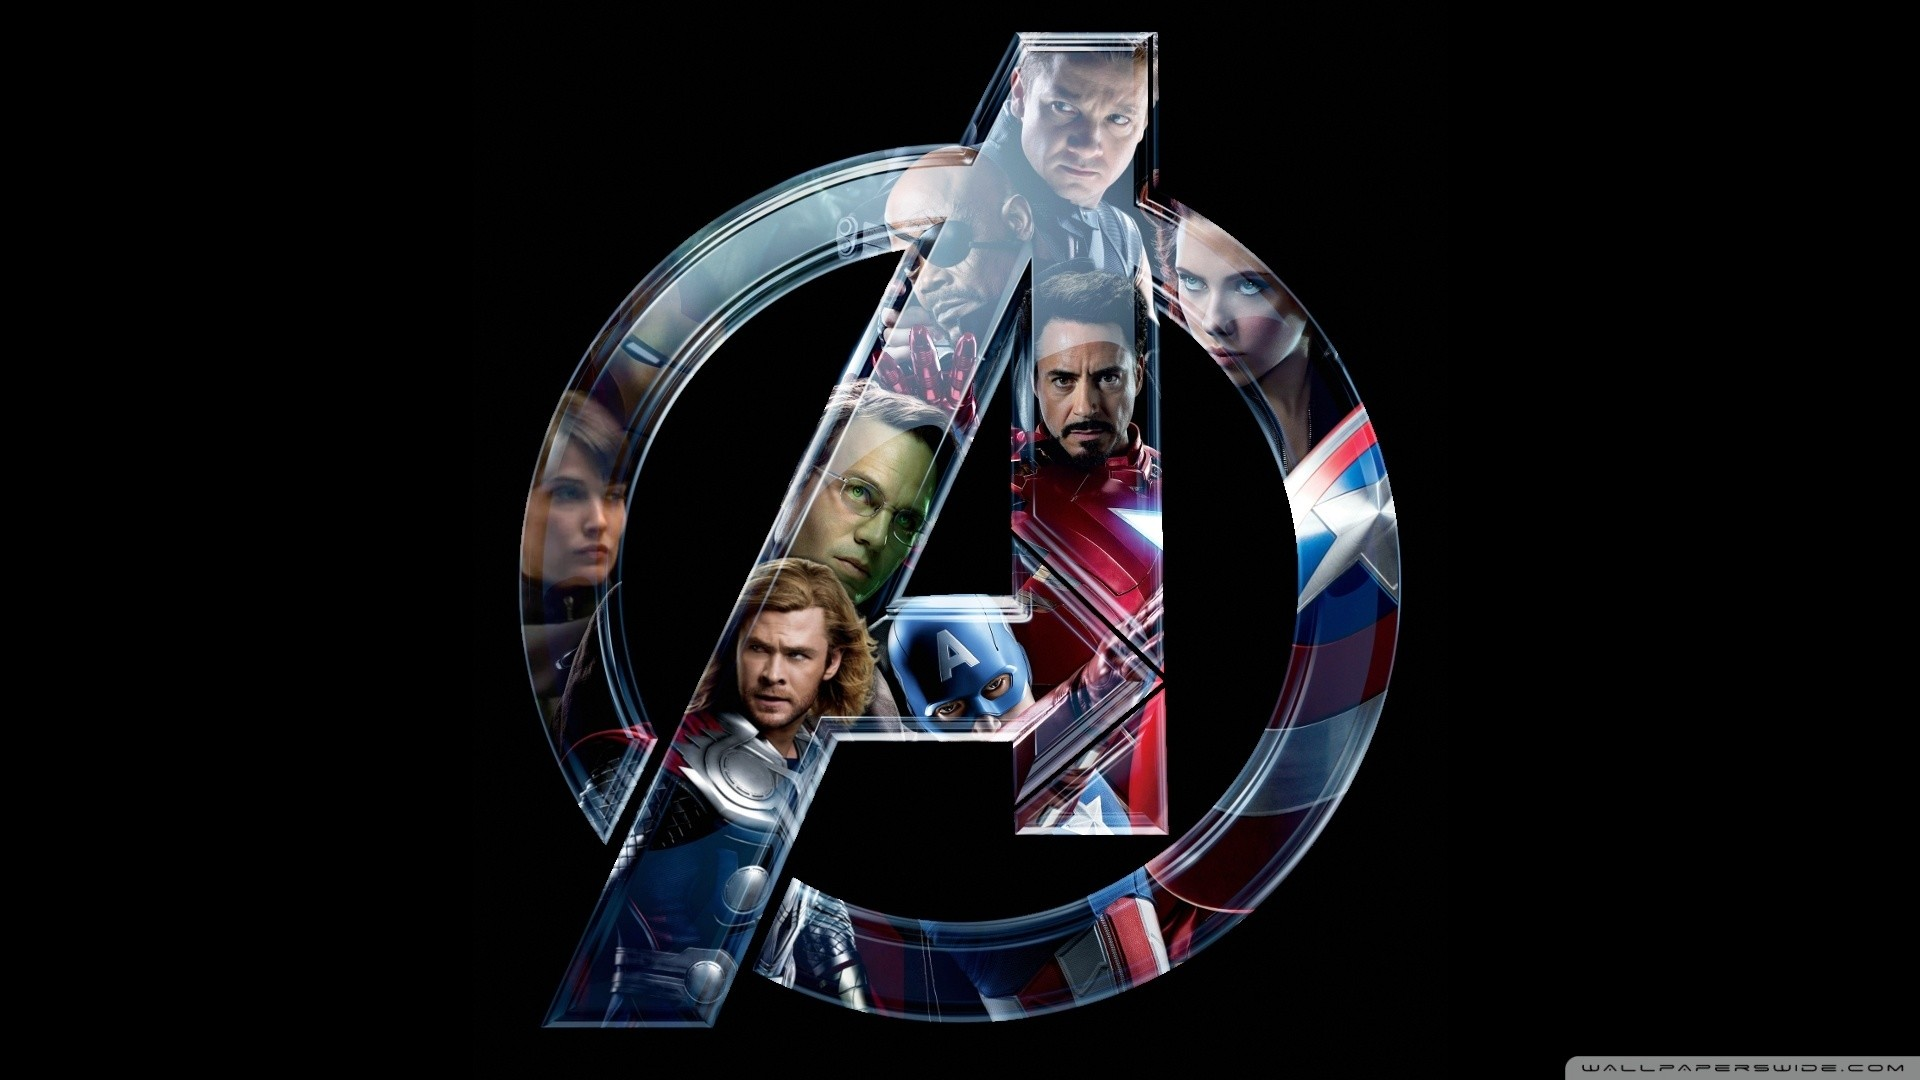 1920x1080 the_avengers_2012___symbol_of_hope-wallpaper-